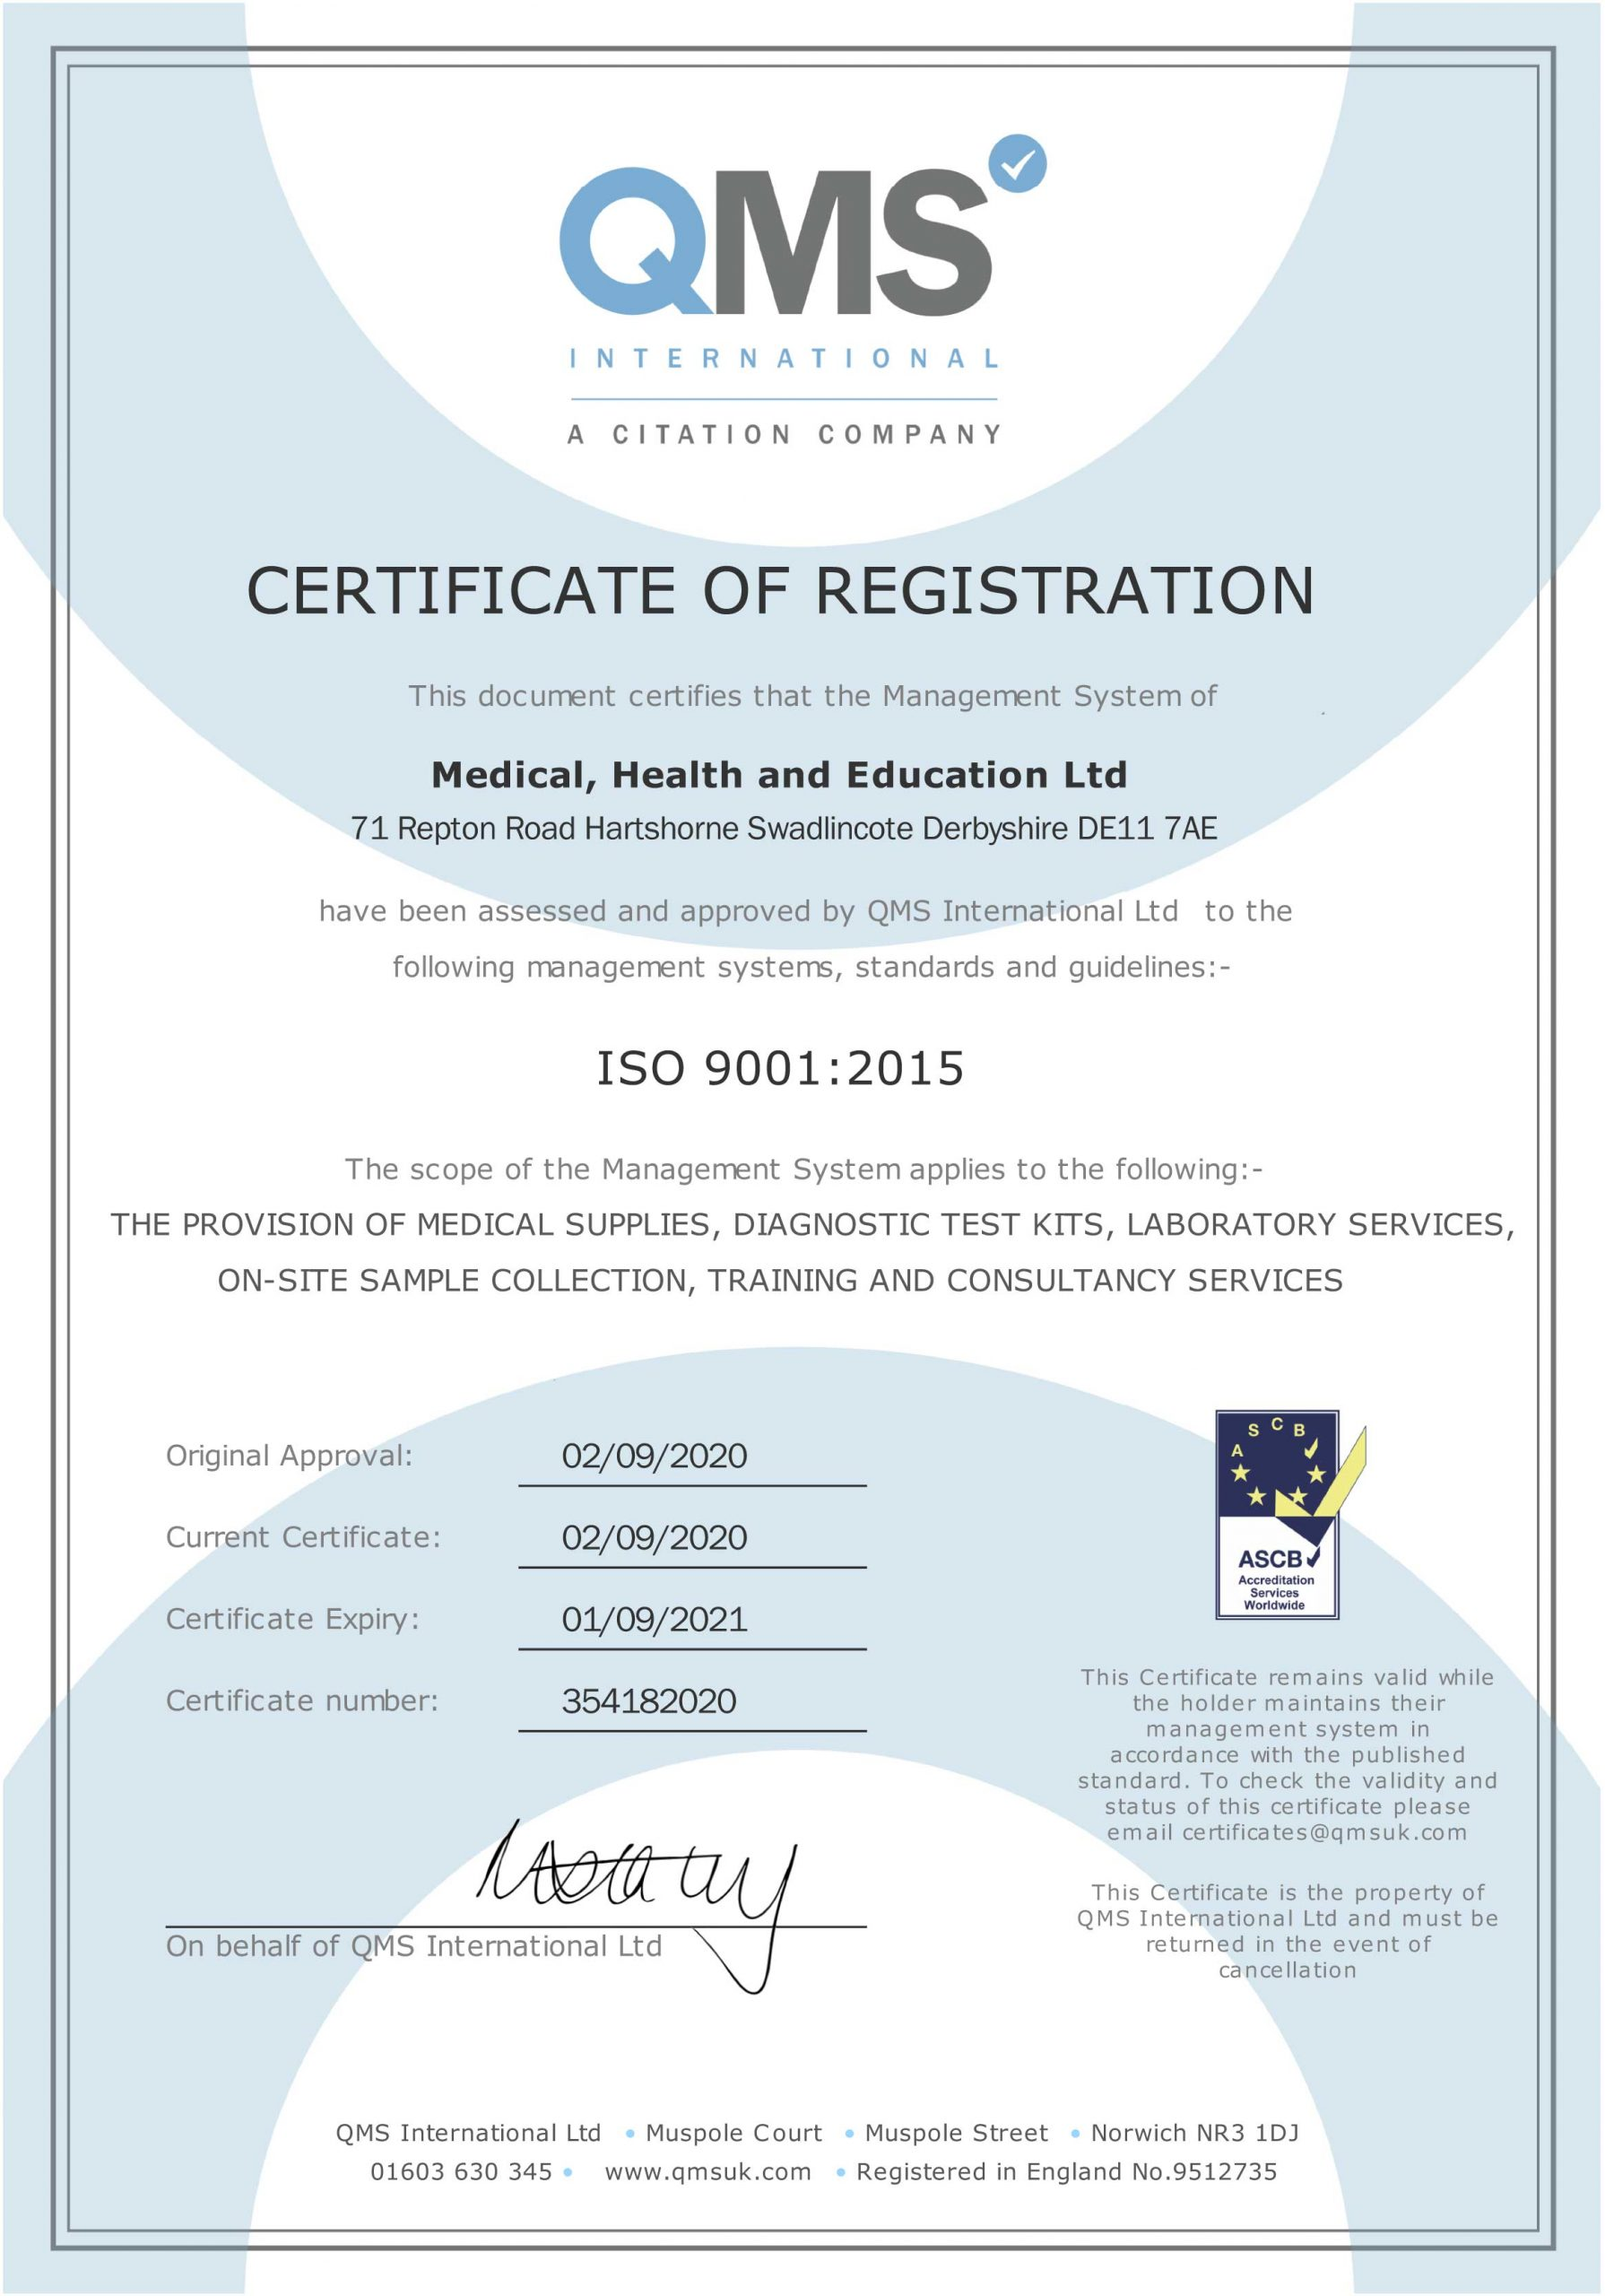 MHE ISO 9001: 2015 Accreditation Certificate